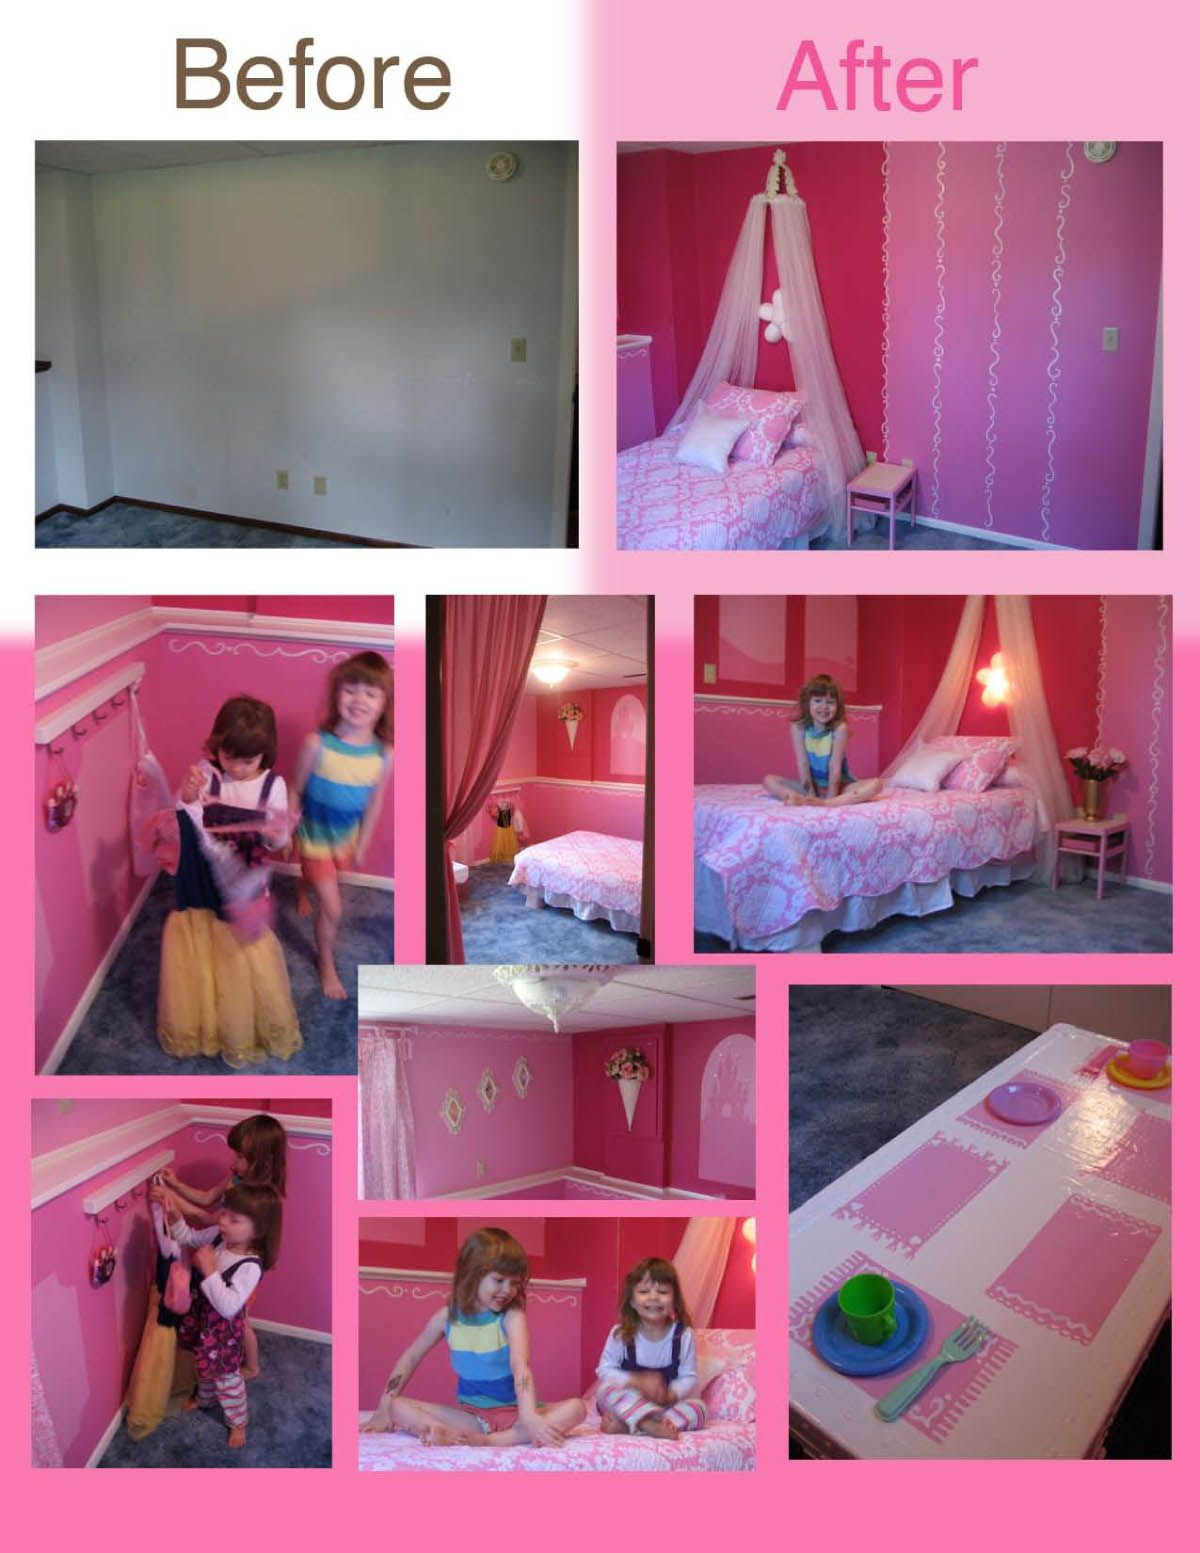 Id Mommy Diy Princess Themed Bedroom By Heidi Panelli Themes Big Girl Bedrooms